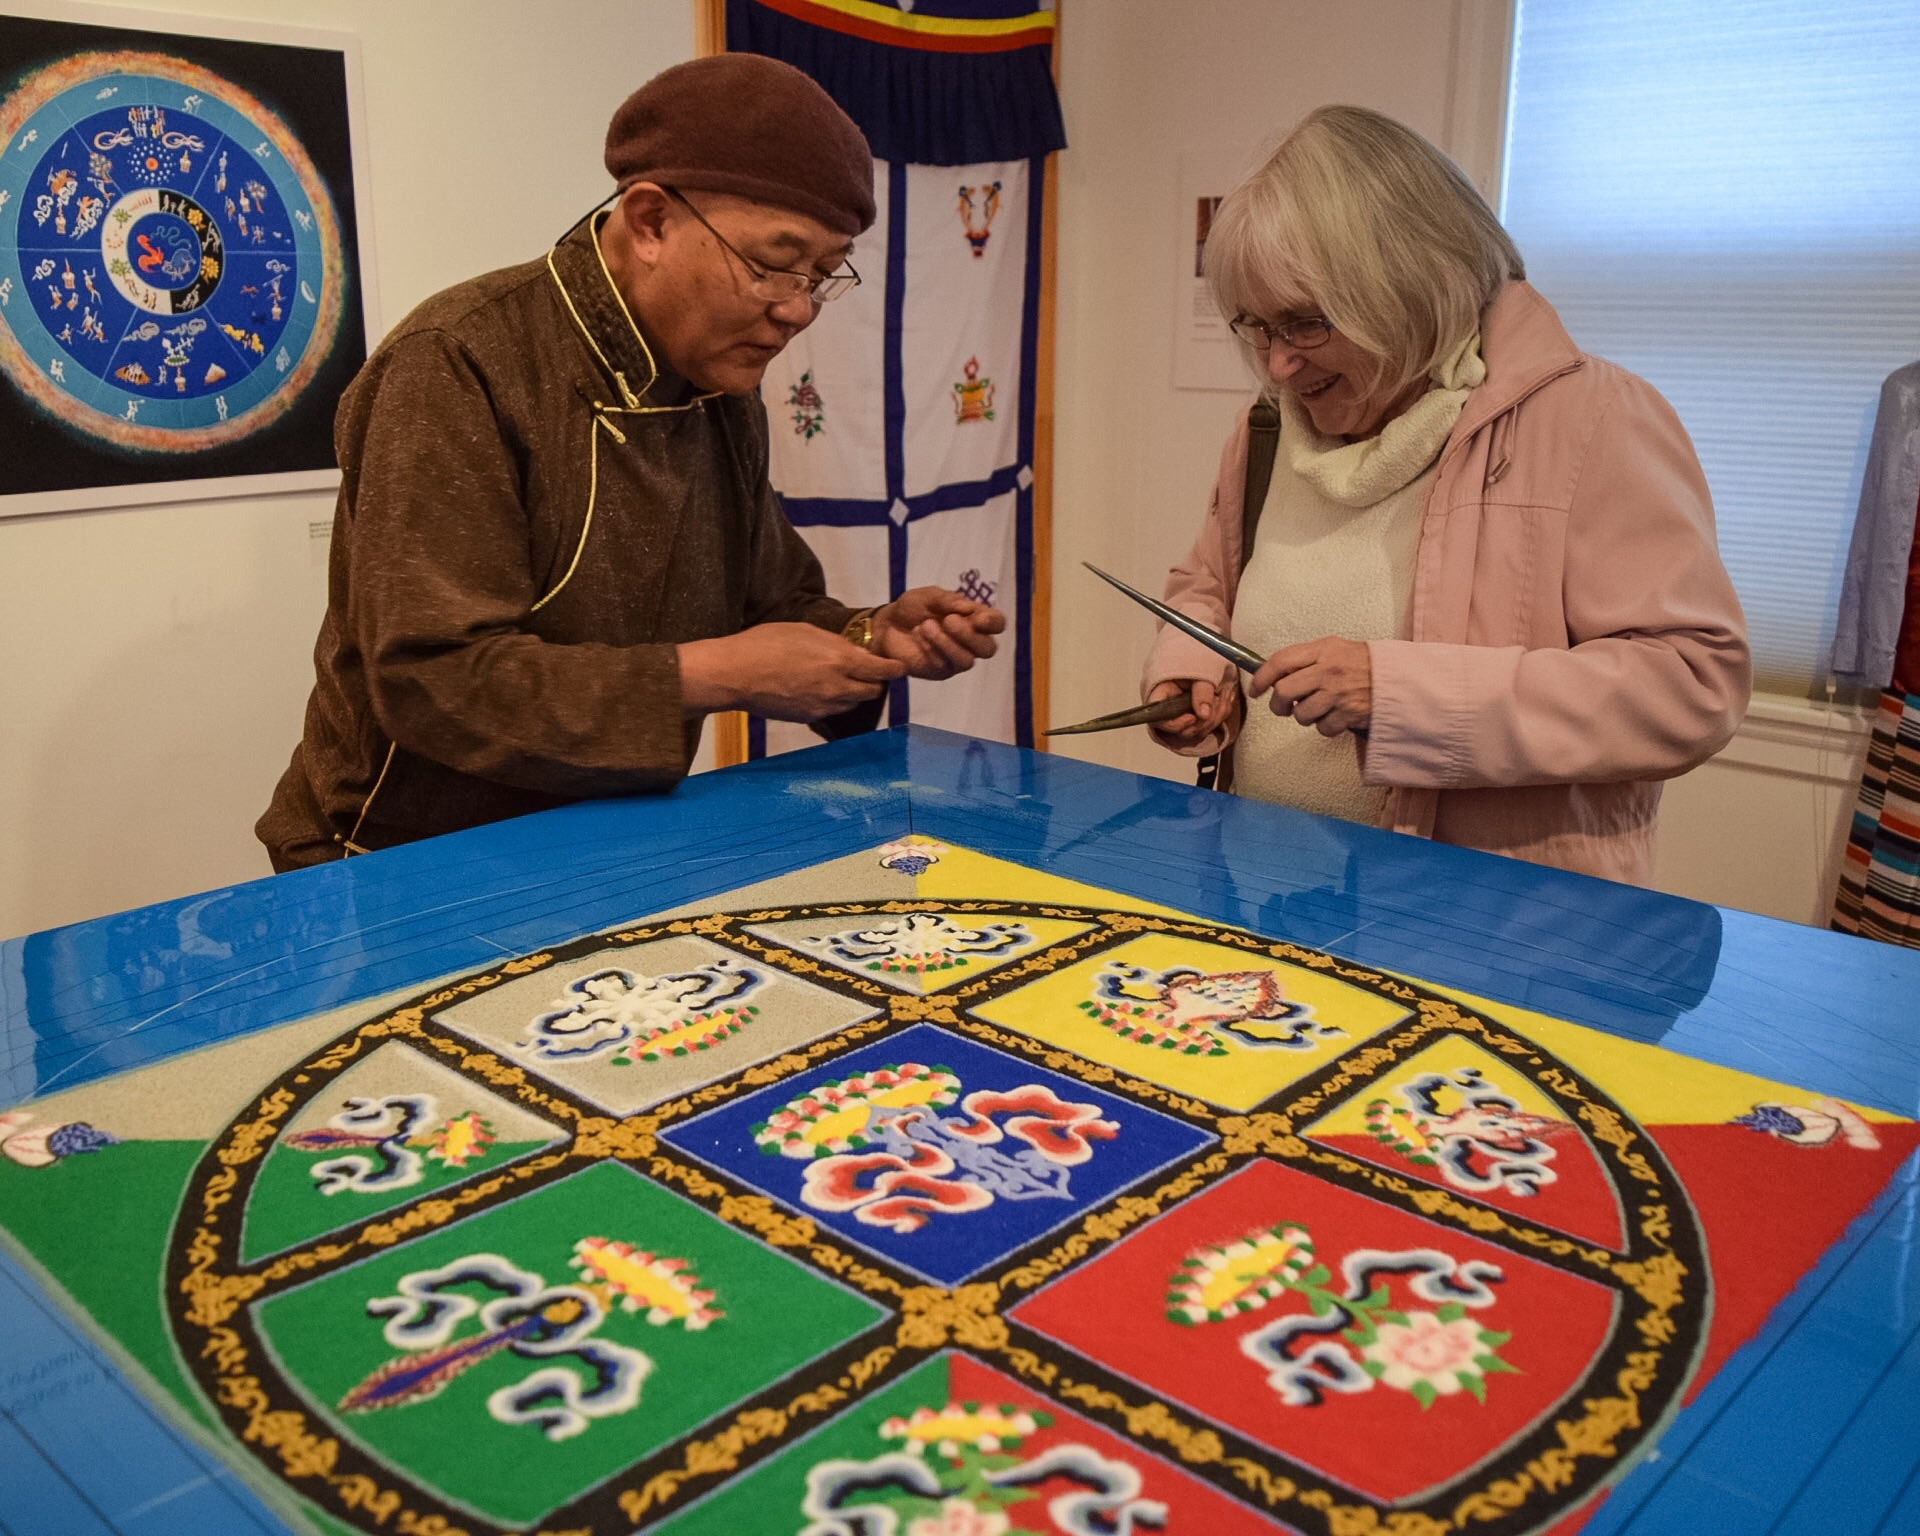 Losang Samten is one of only 30 people worldwide qualified to teach the art of Tibetan sandpainting. A former Buddhist monk, in 1988 he was sent to America by the Dalai Lama to demonstrate the art form of the sand mandala. That marked the first time a sand mandala had been created in the West.